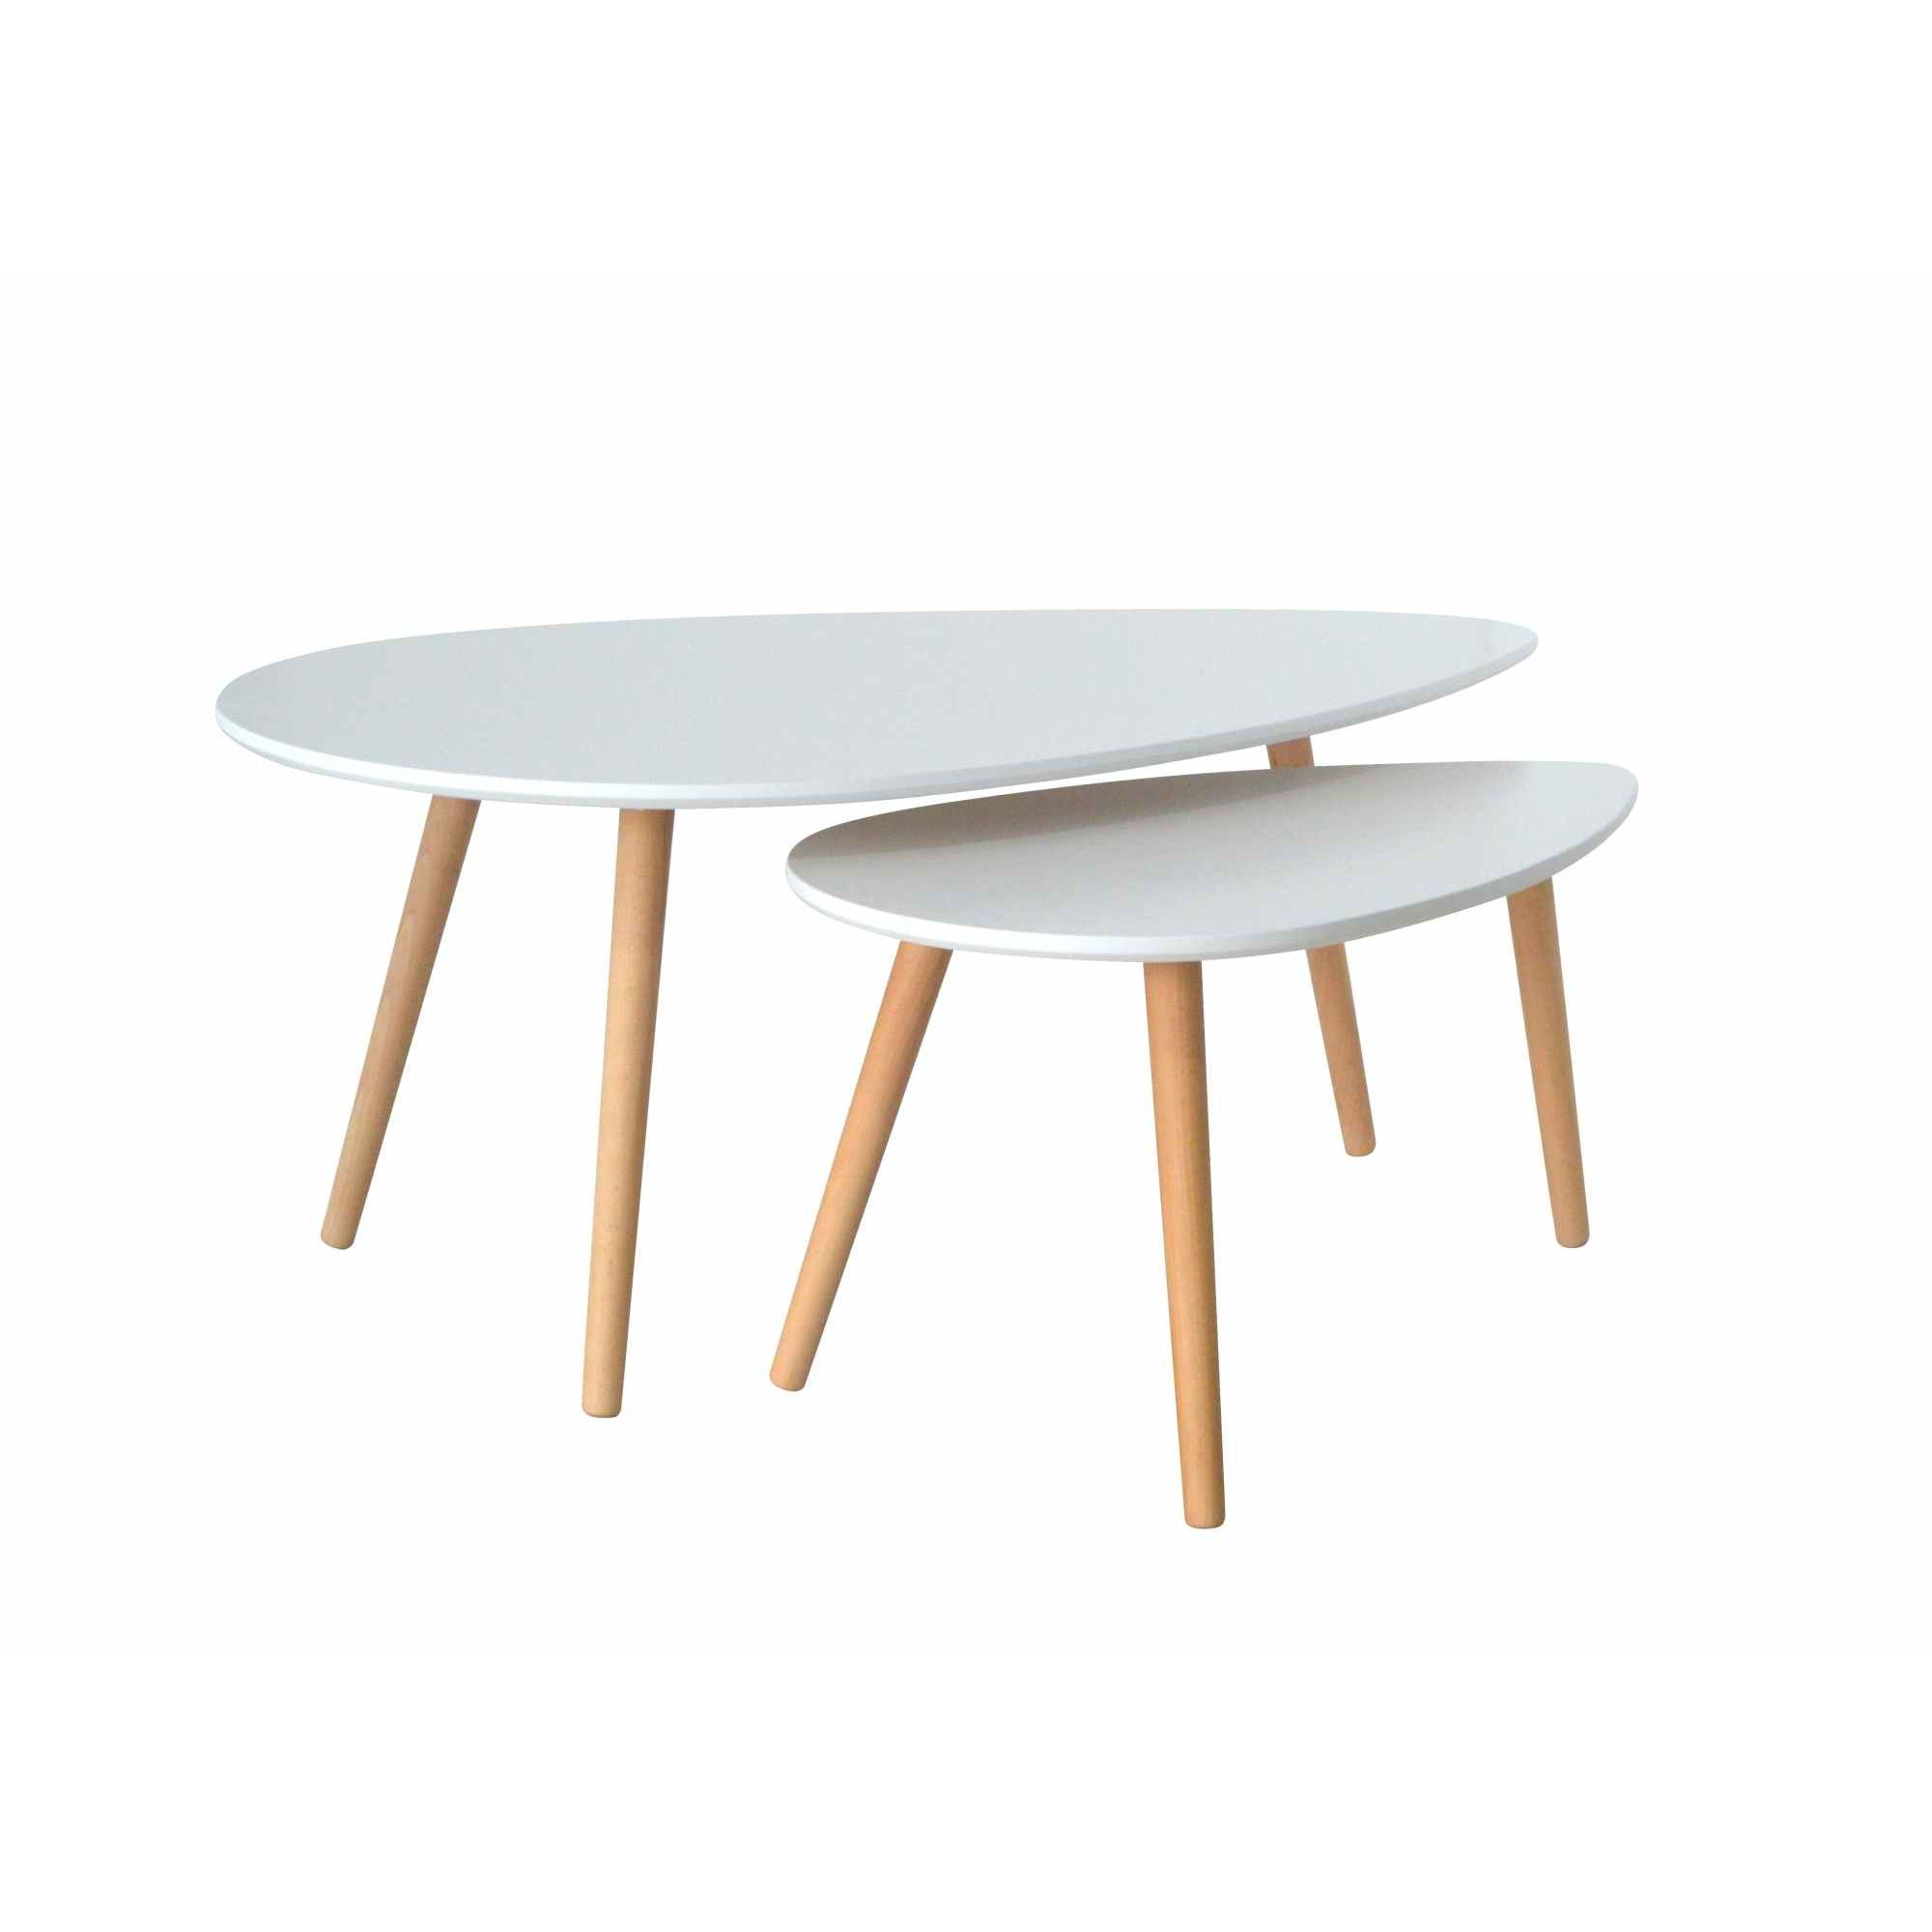 Deco In Paris Table Basse Scandinave Blanc Avesta Avesta